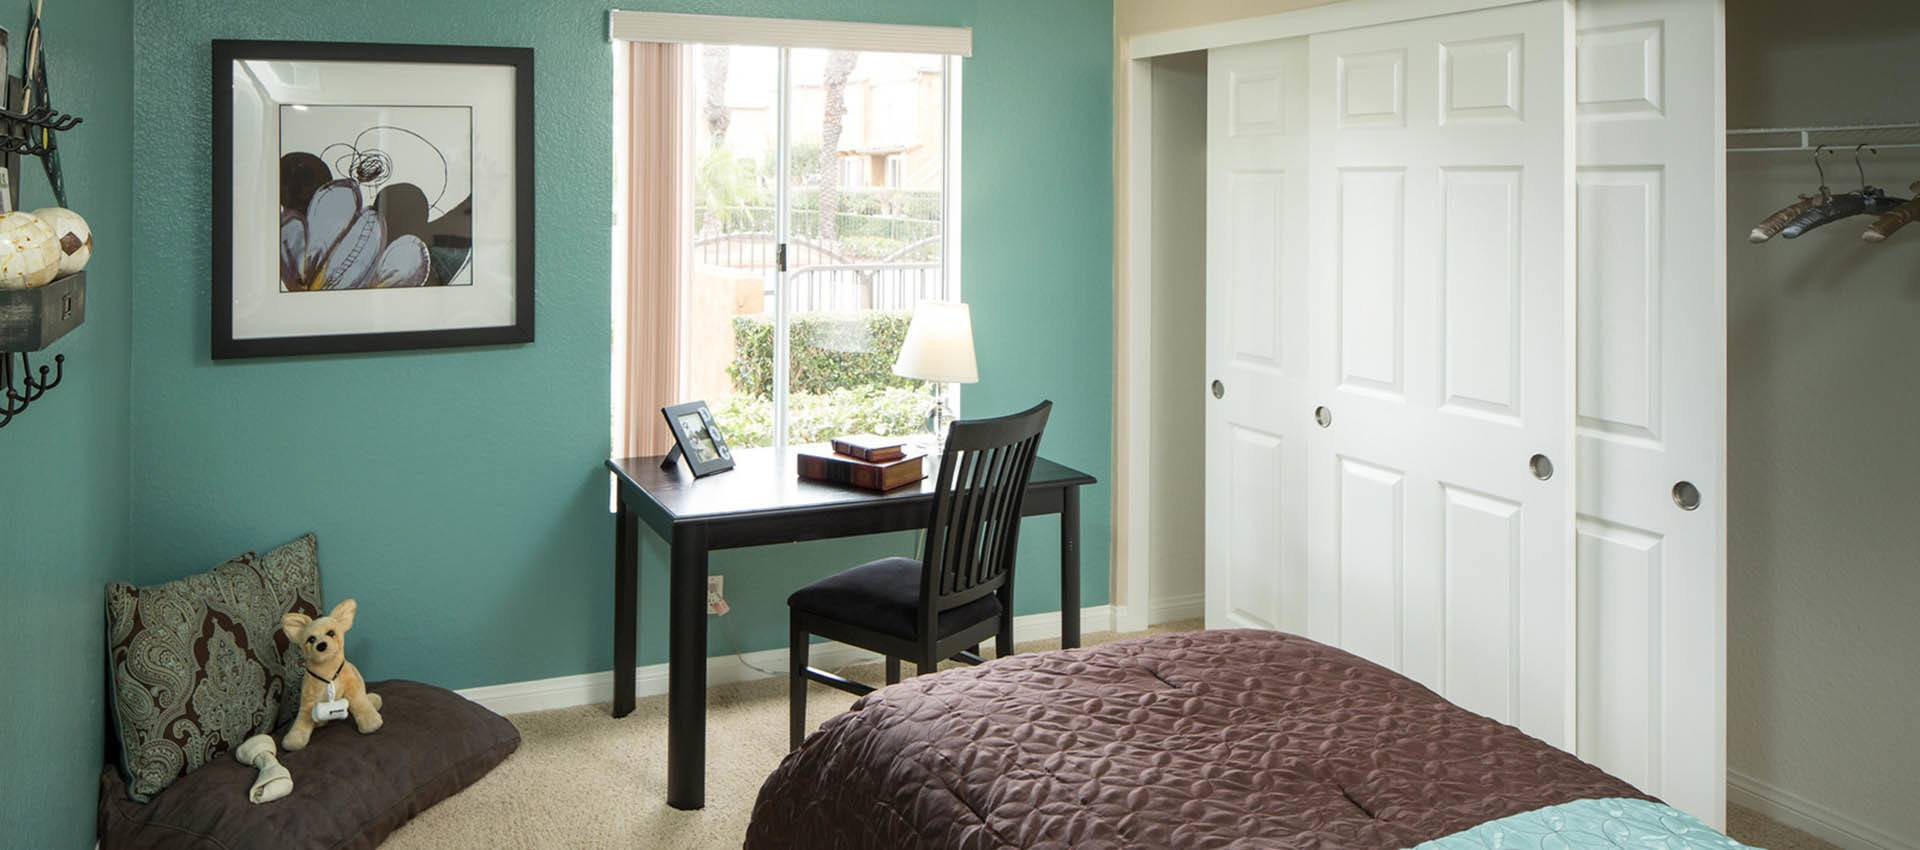 Bedroom With Desk at Hidden Hills Condominium Rentals in Laguna Niguel, CA